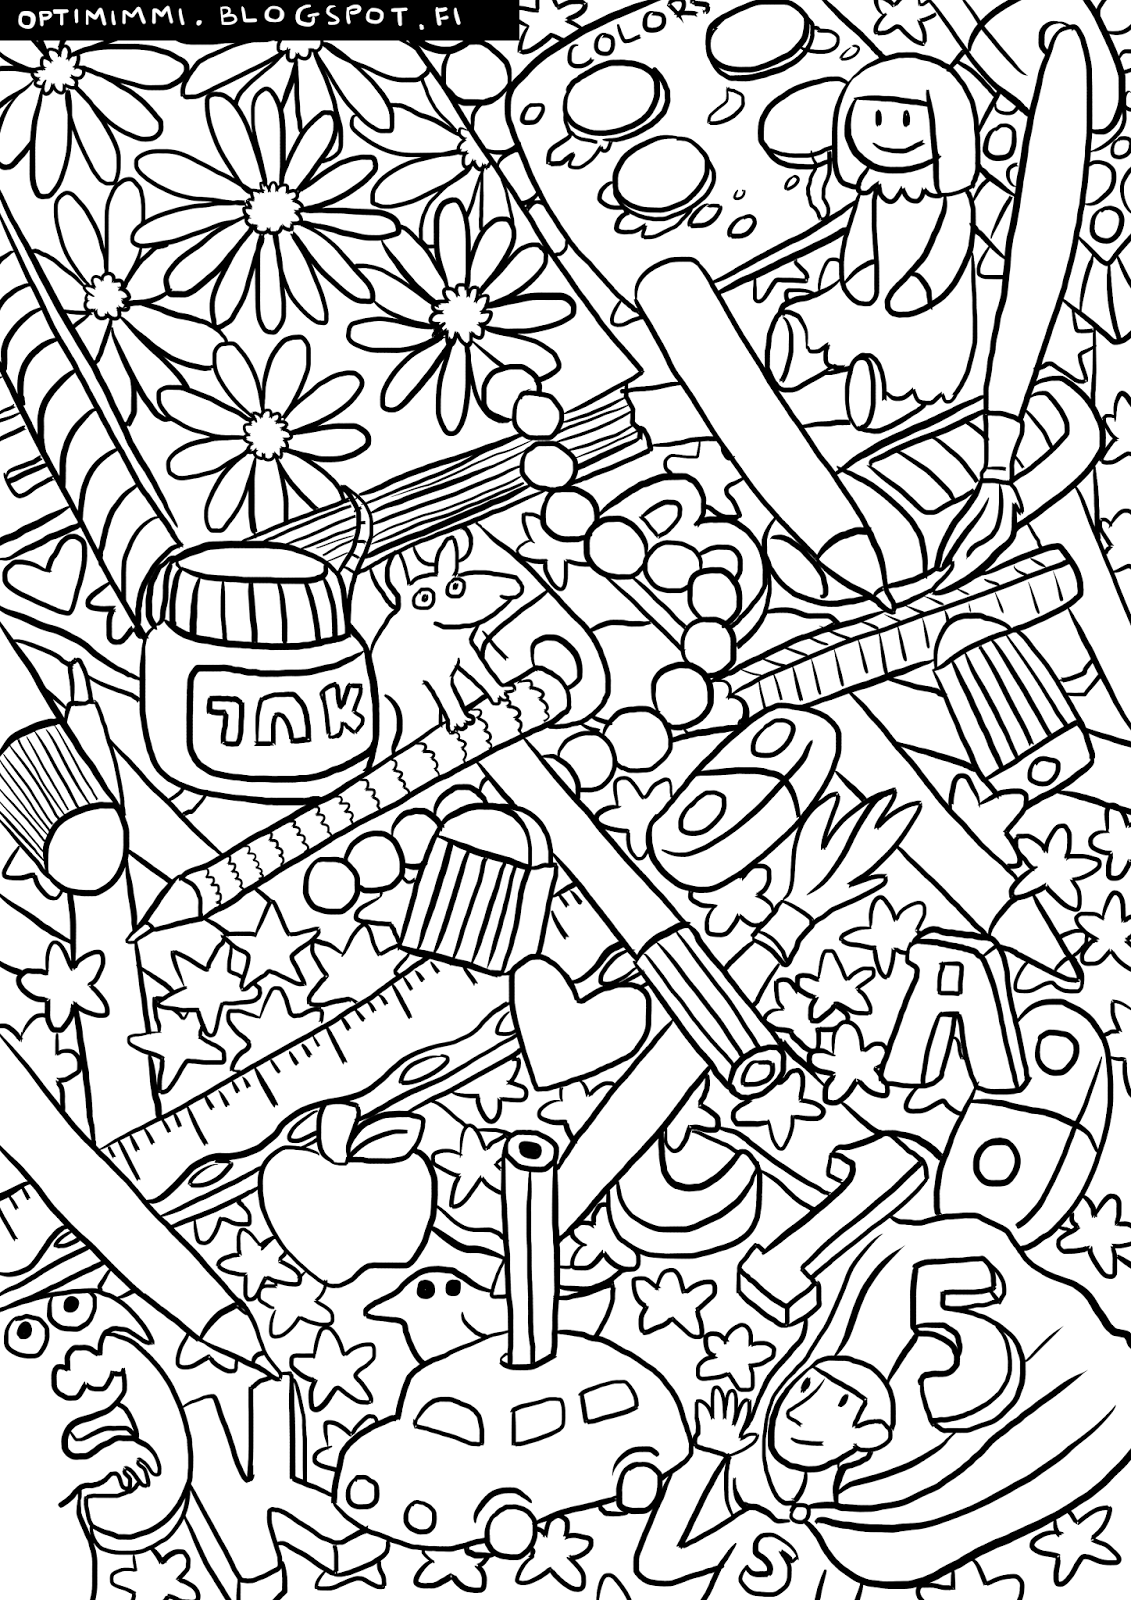 OPTIMIMMI 2016 Coloring pages 2016 V rityskuvat